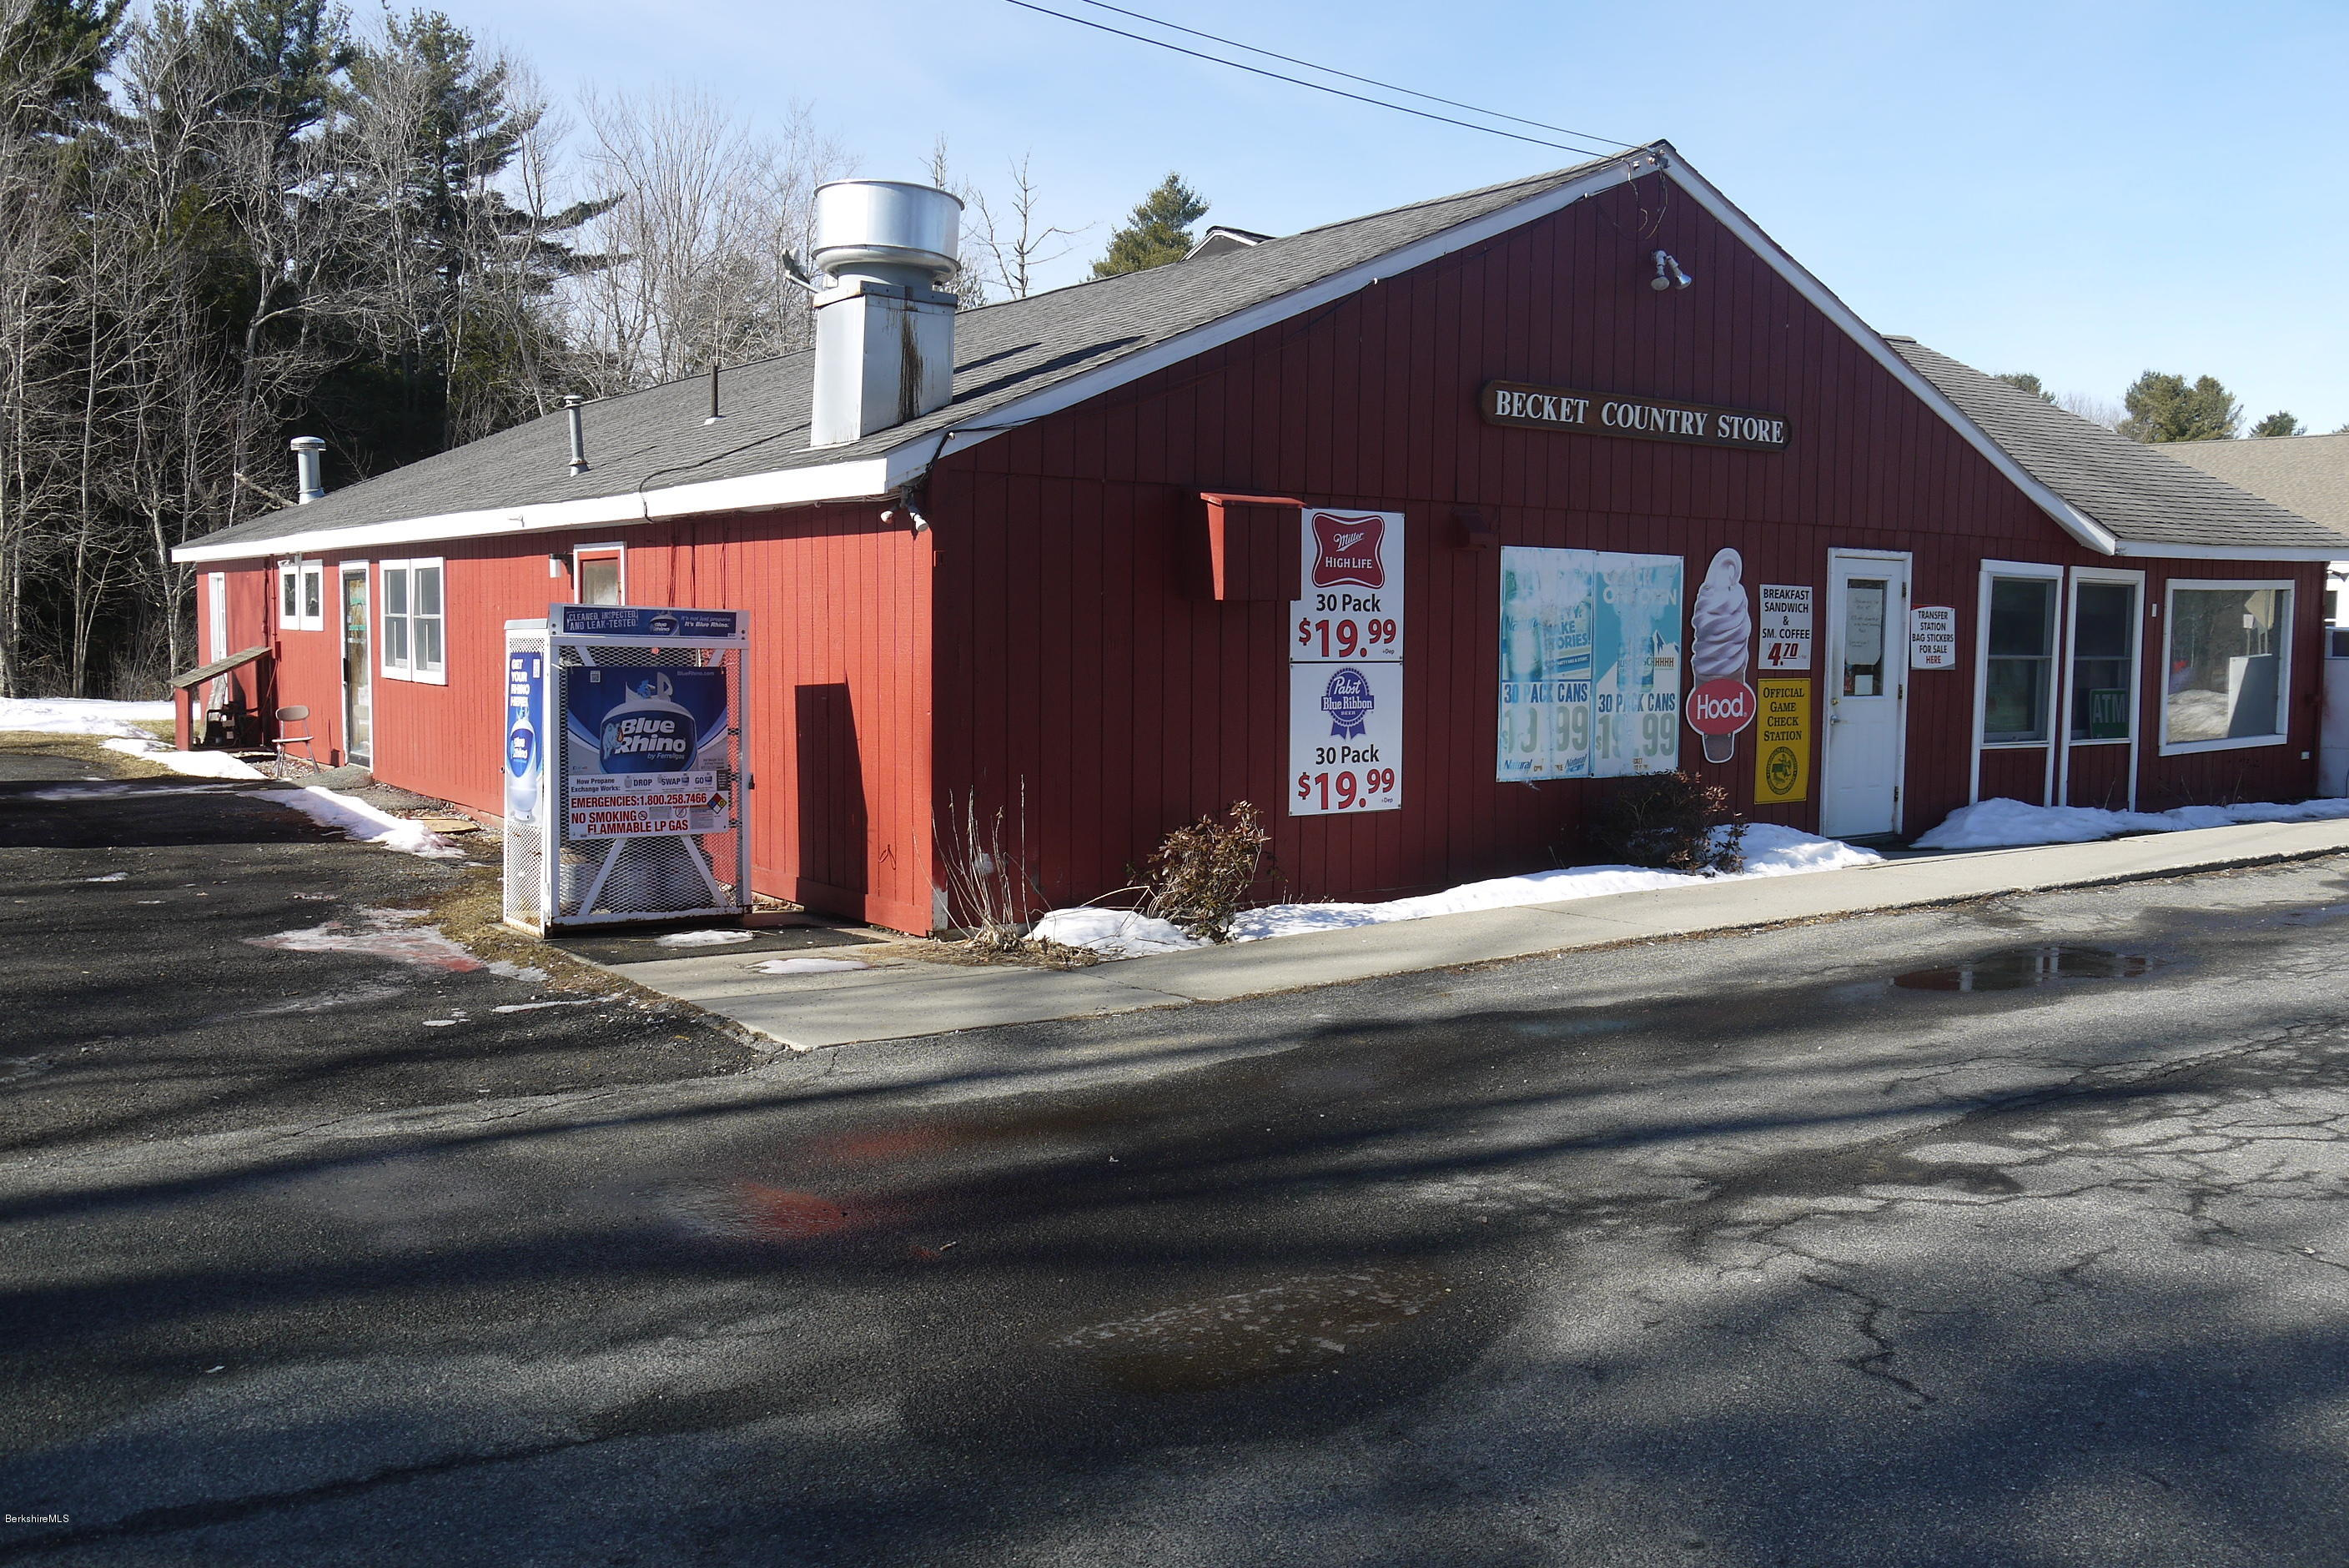 Property located at 609 Main St Becket MA 01223 photo